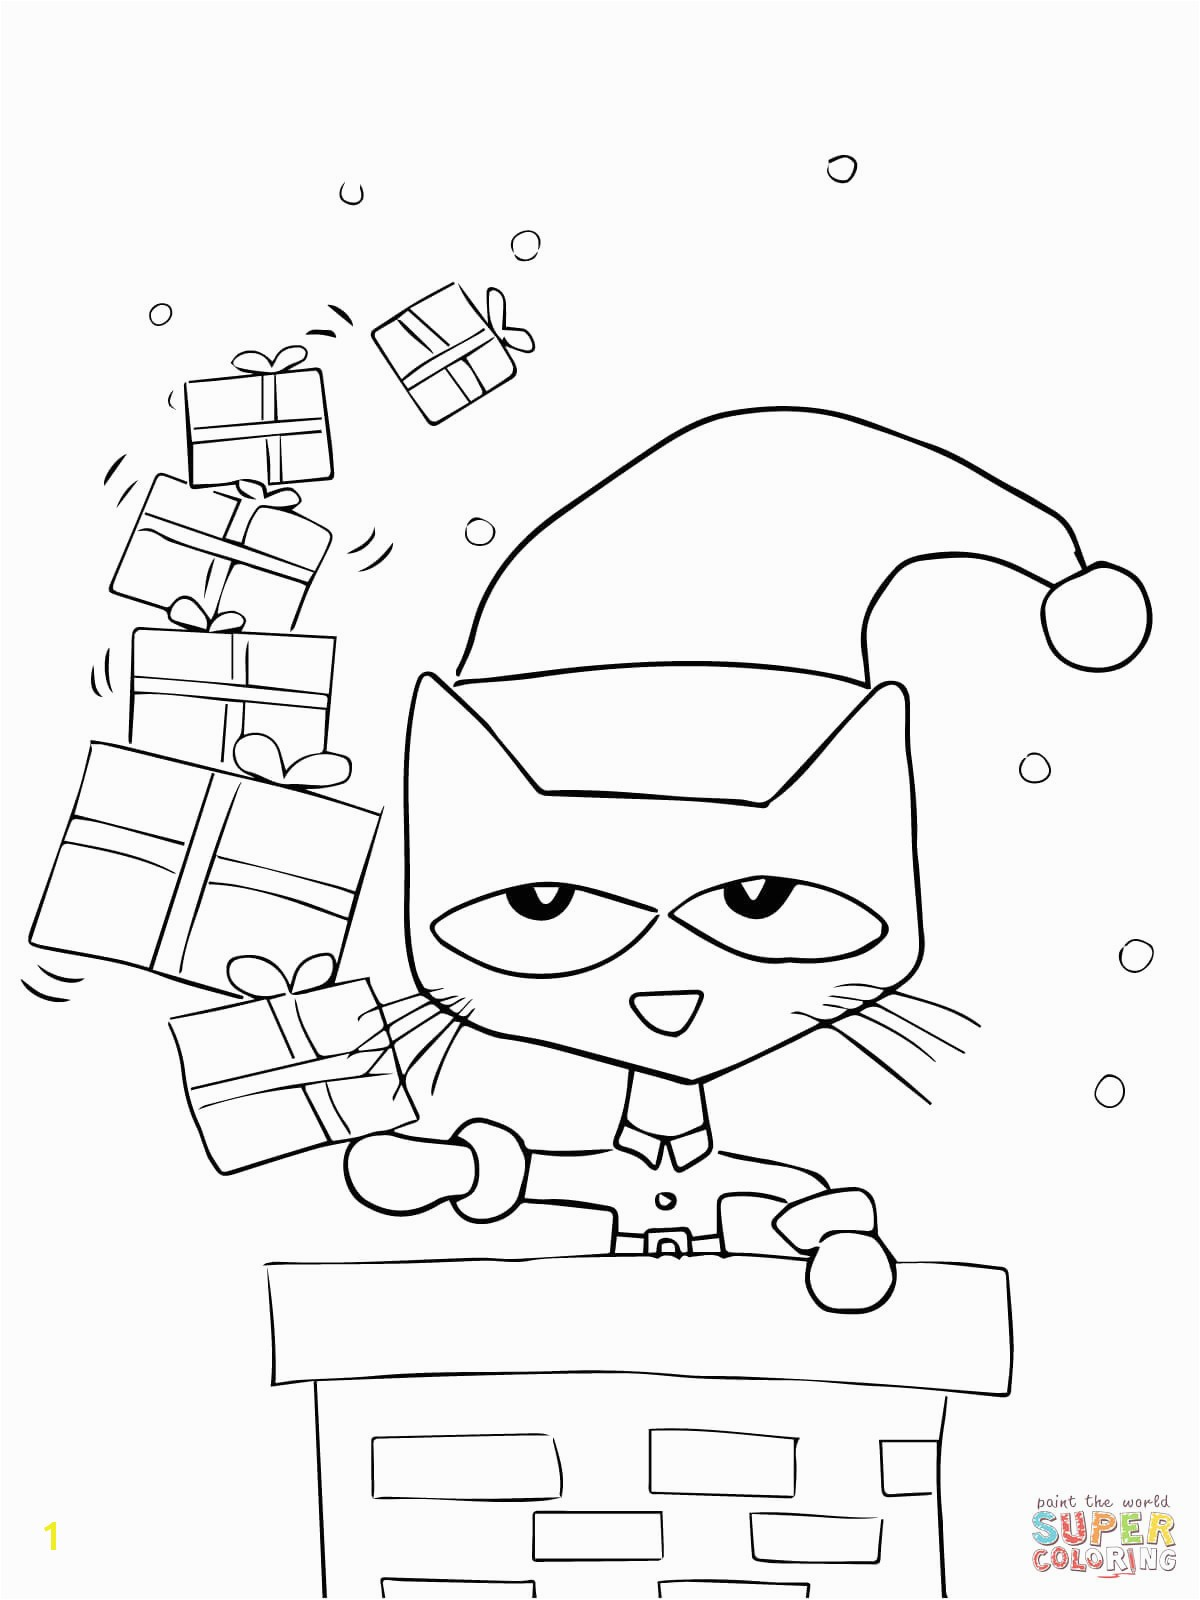 Pete The Cat Coloring Page Part 221 Make Your World More Colorful With Printable Coloring Pages